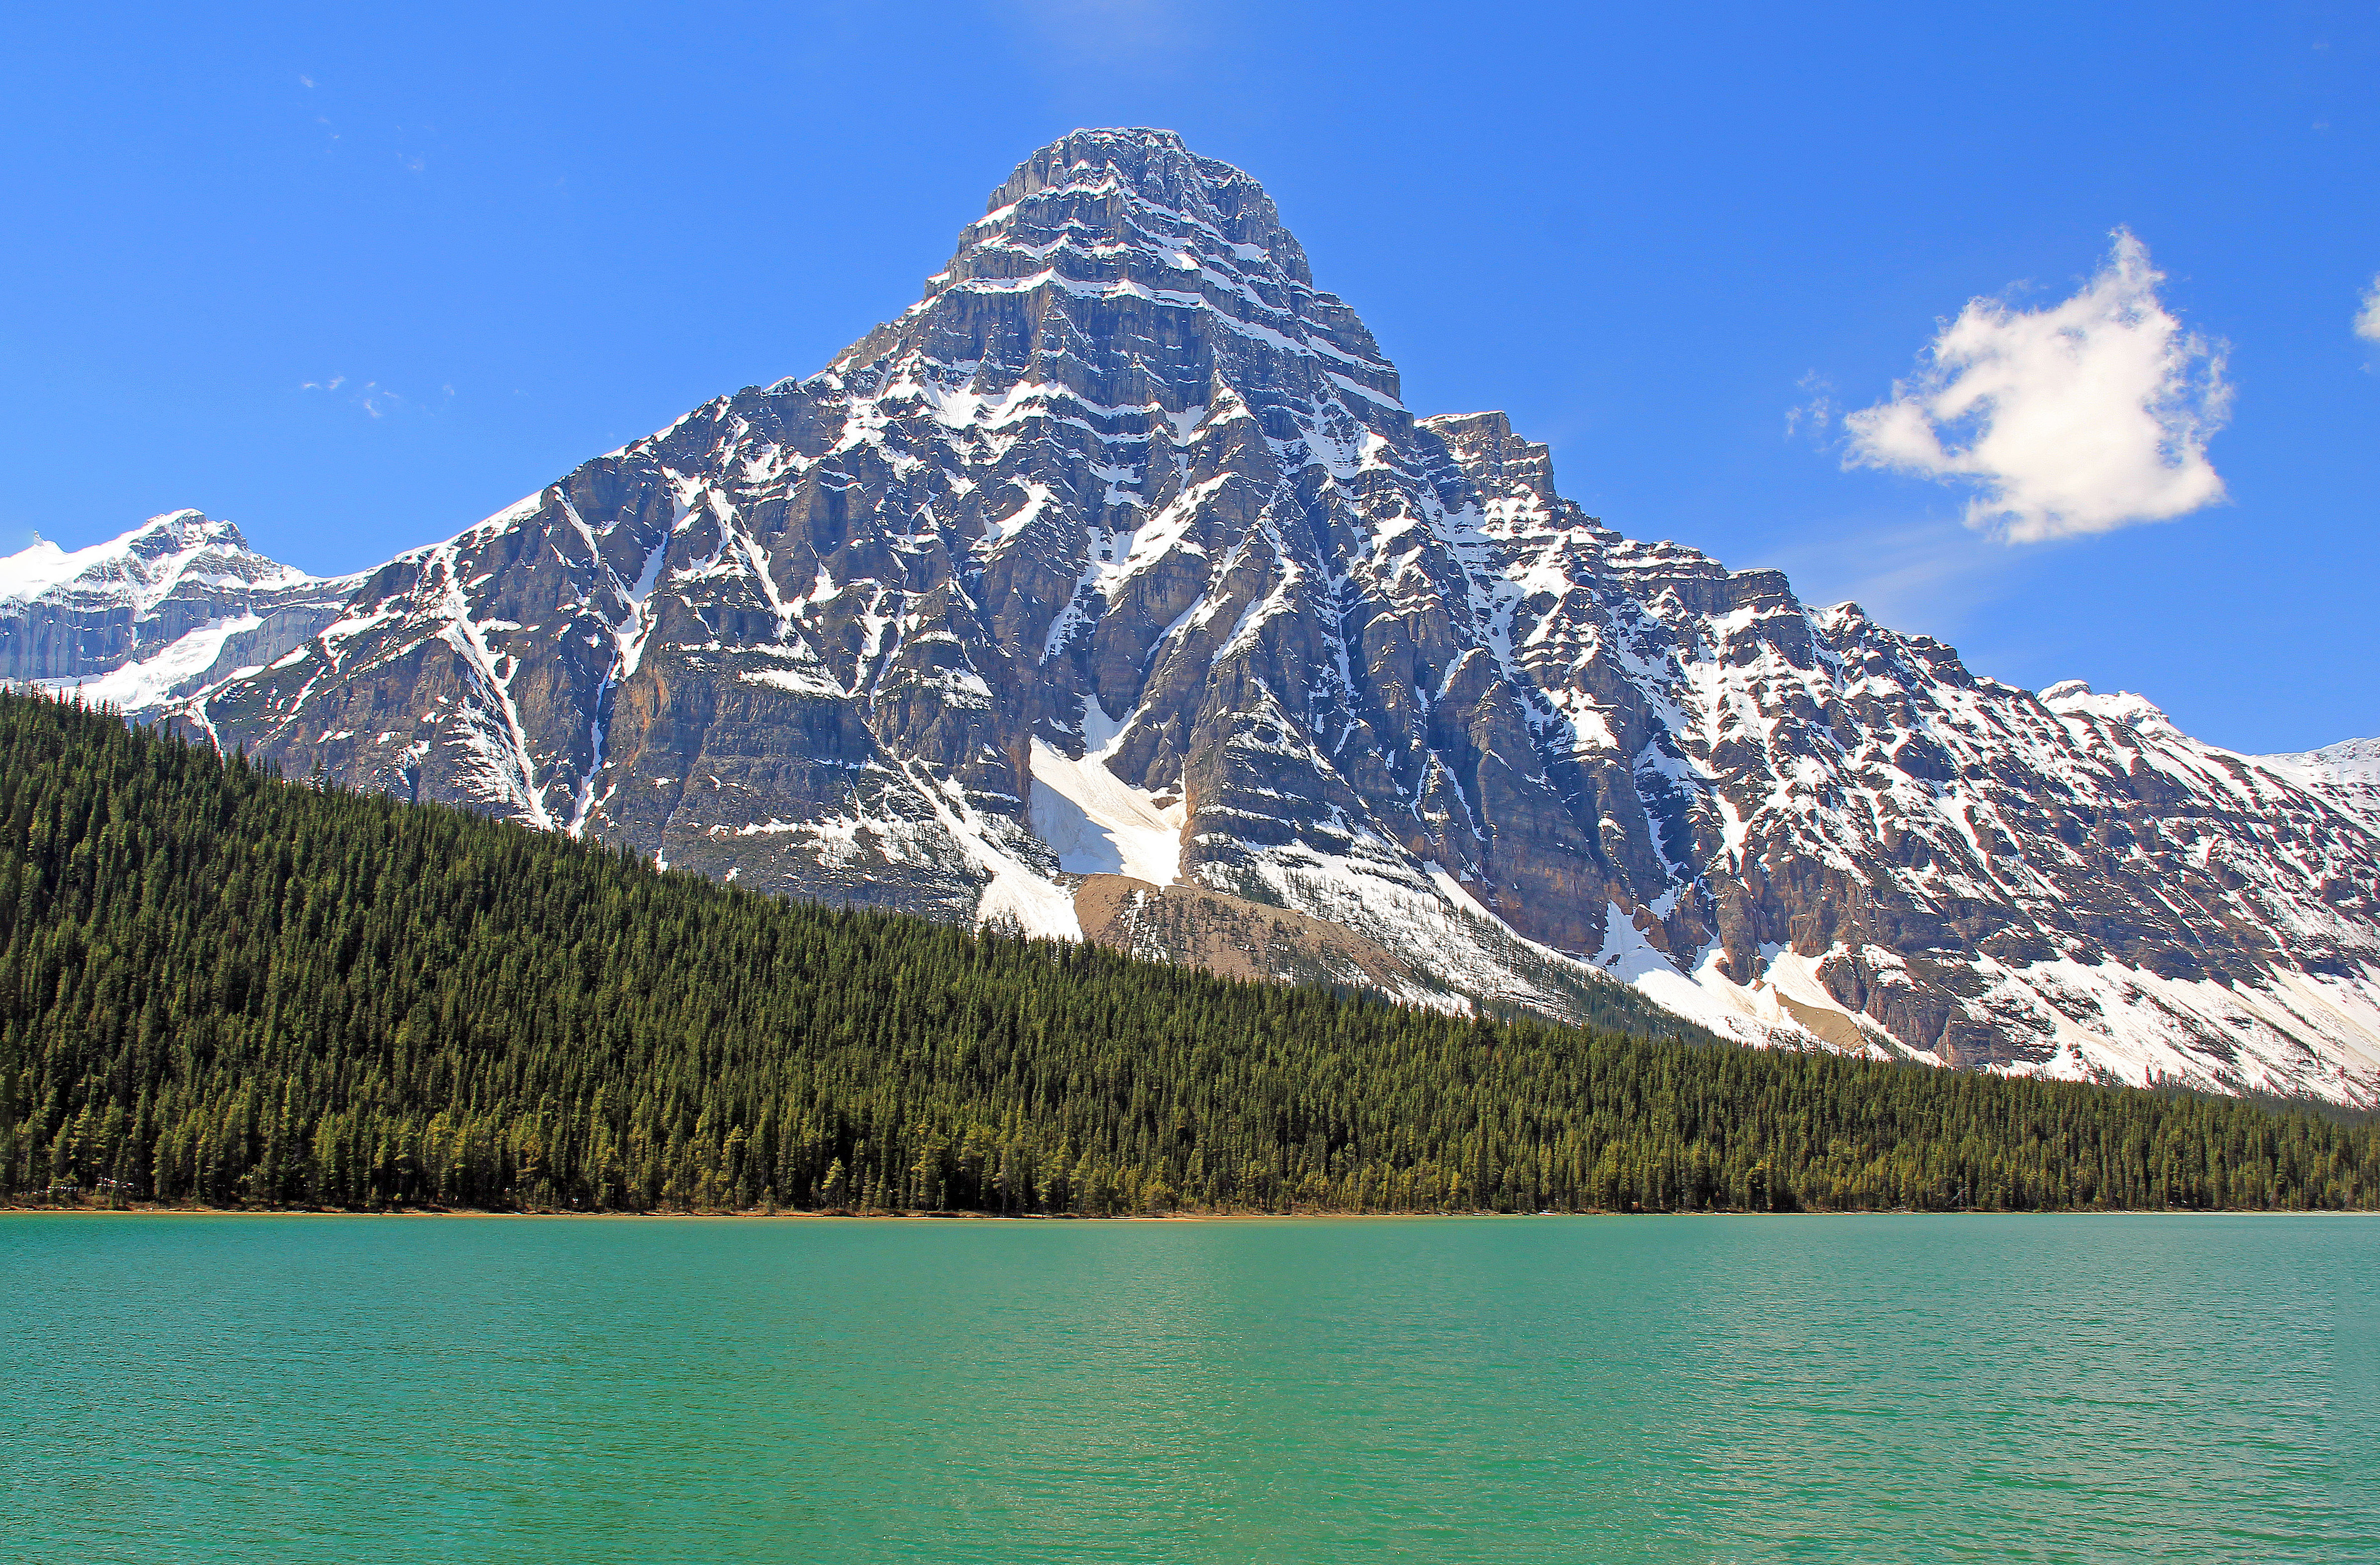 """<p>Icefields Parkway, Banff National Park, AB.</p><p class=""""lightbox-share""""><span>Share: </span><a class=""""lightbox-fb"""" href=""""javascript:void(0);"""">Facebook</a><a class=""""lightbox-twit"""" href=""""https://twitter.com/home?status=I%20voted%20for%20Chephren%20Spire%20in%20the%20Cornice%20Calendar%20Contest.%20Choose%20your%20favourite%206%20photos:%20http://ow.ly/yCSmZ"""" target=""""_blank"""">Twitter</a></p><input type=hidden class=voteid value=1879 />"""